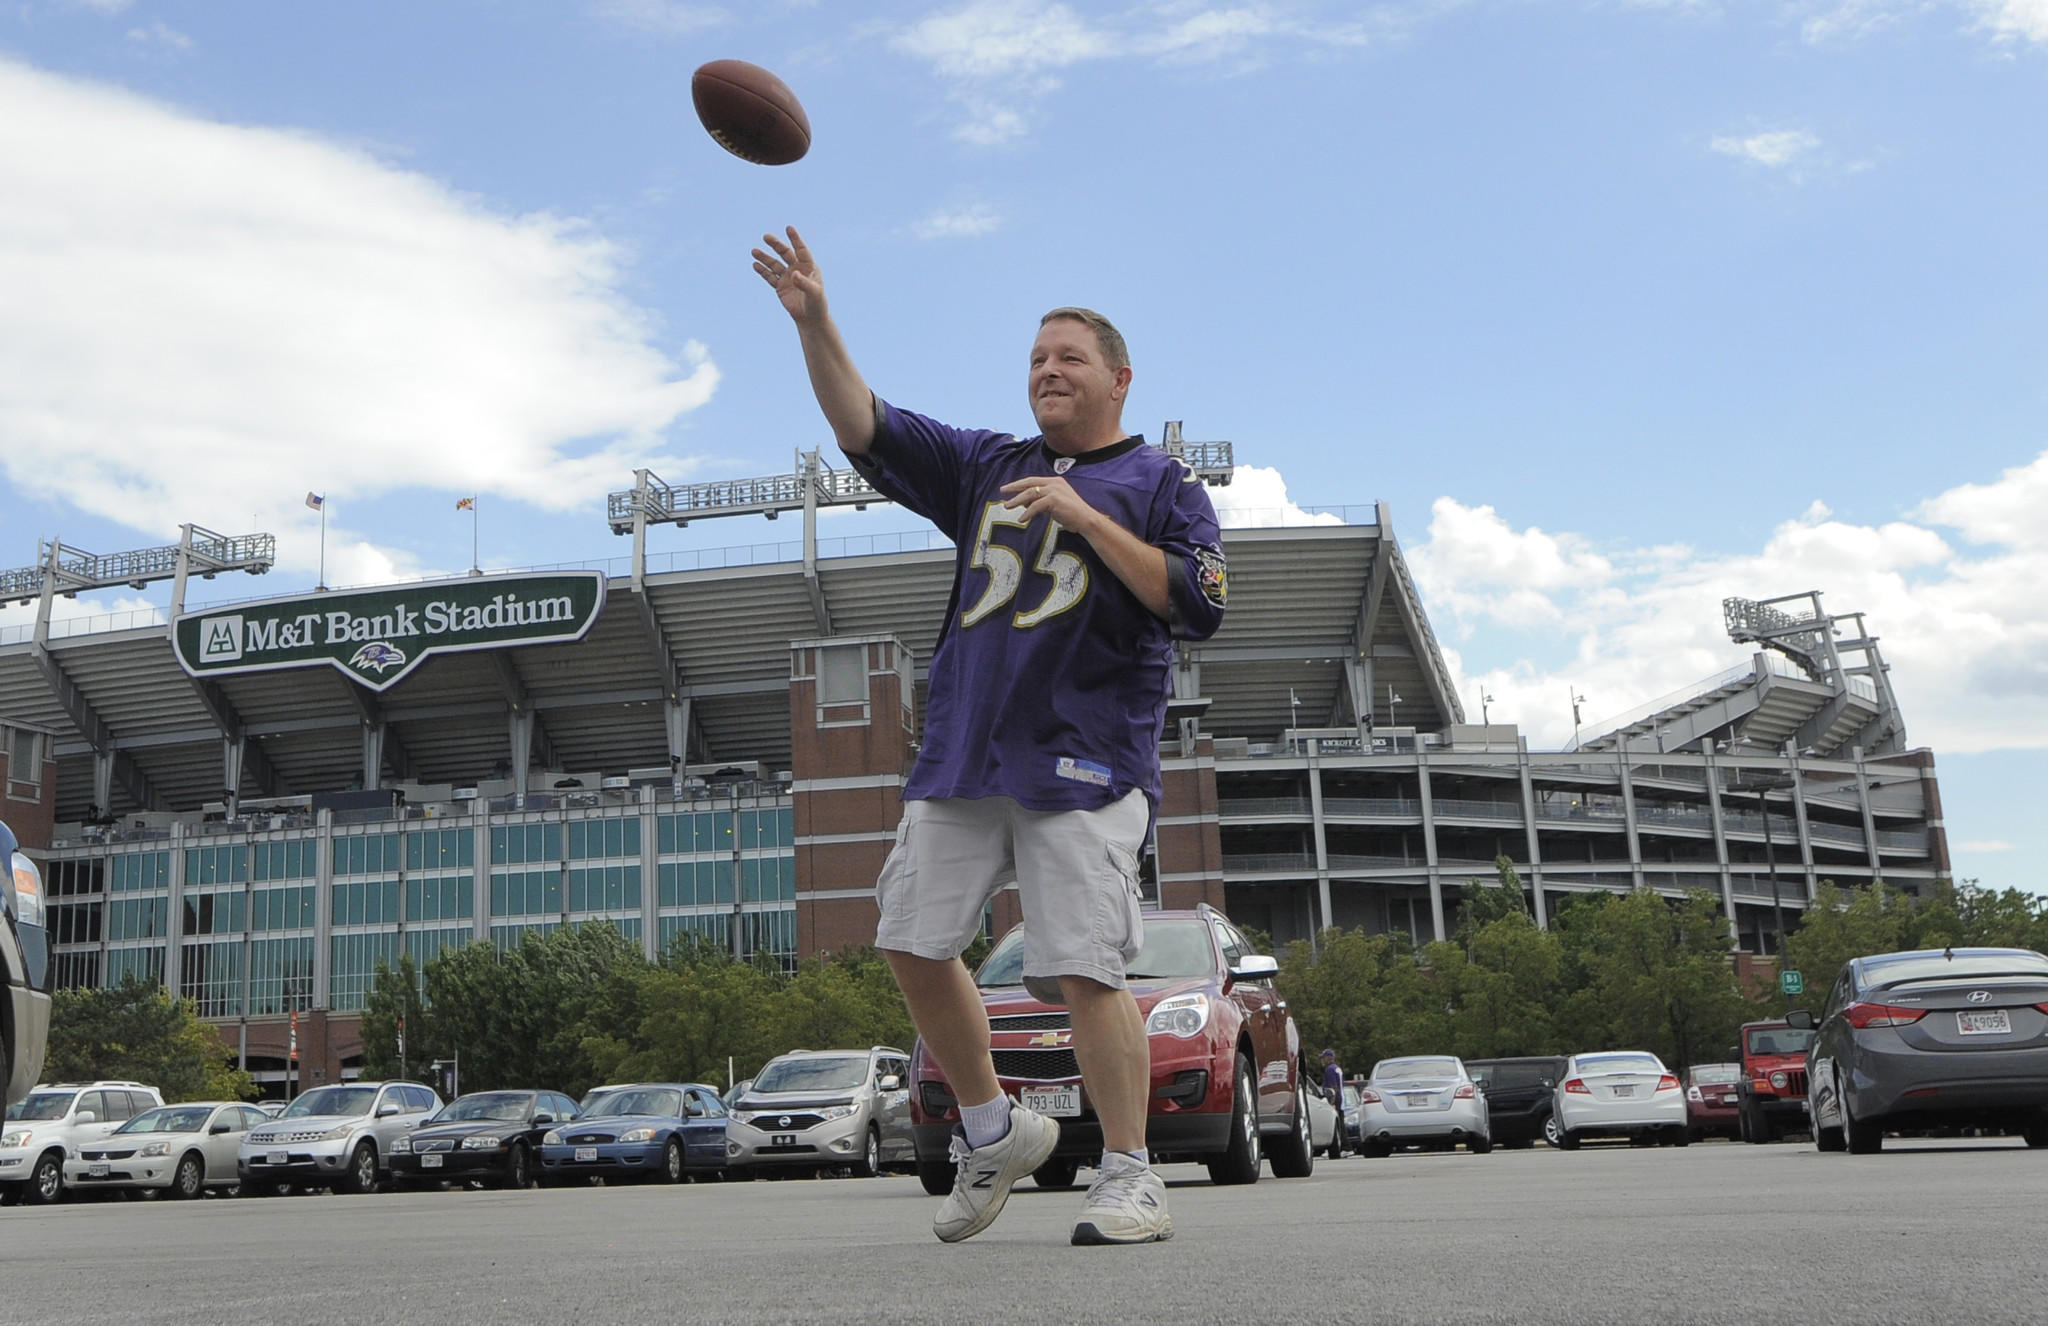 Chris Schreiner of Westminster throws a football during a tailgate outside the stadium before the Ravens practice. Baltimore Ravens hold their first public practice of the season at M&T Bank Stadium.